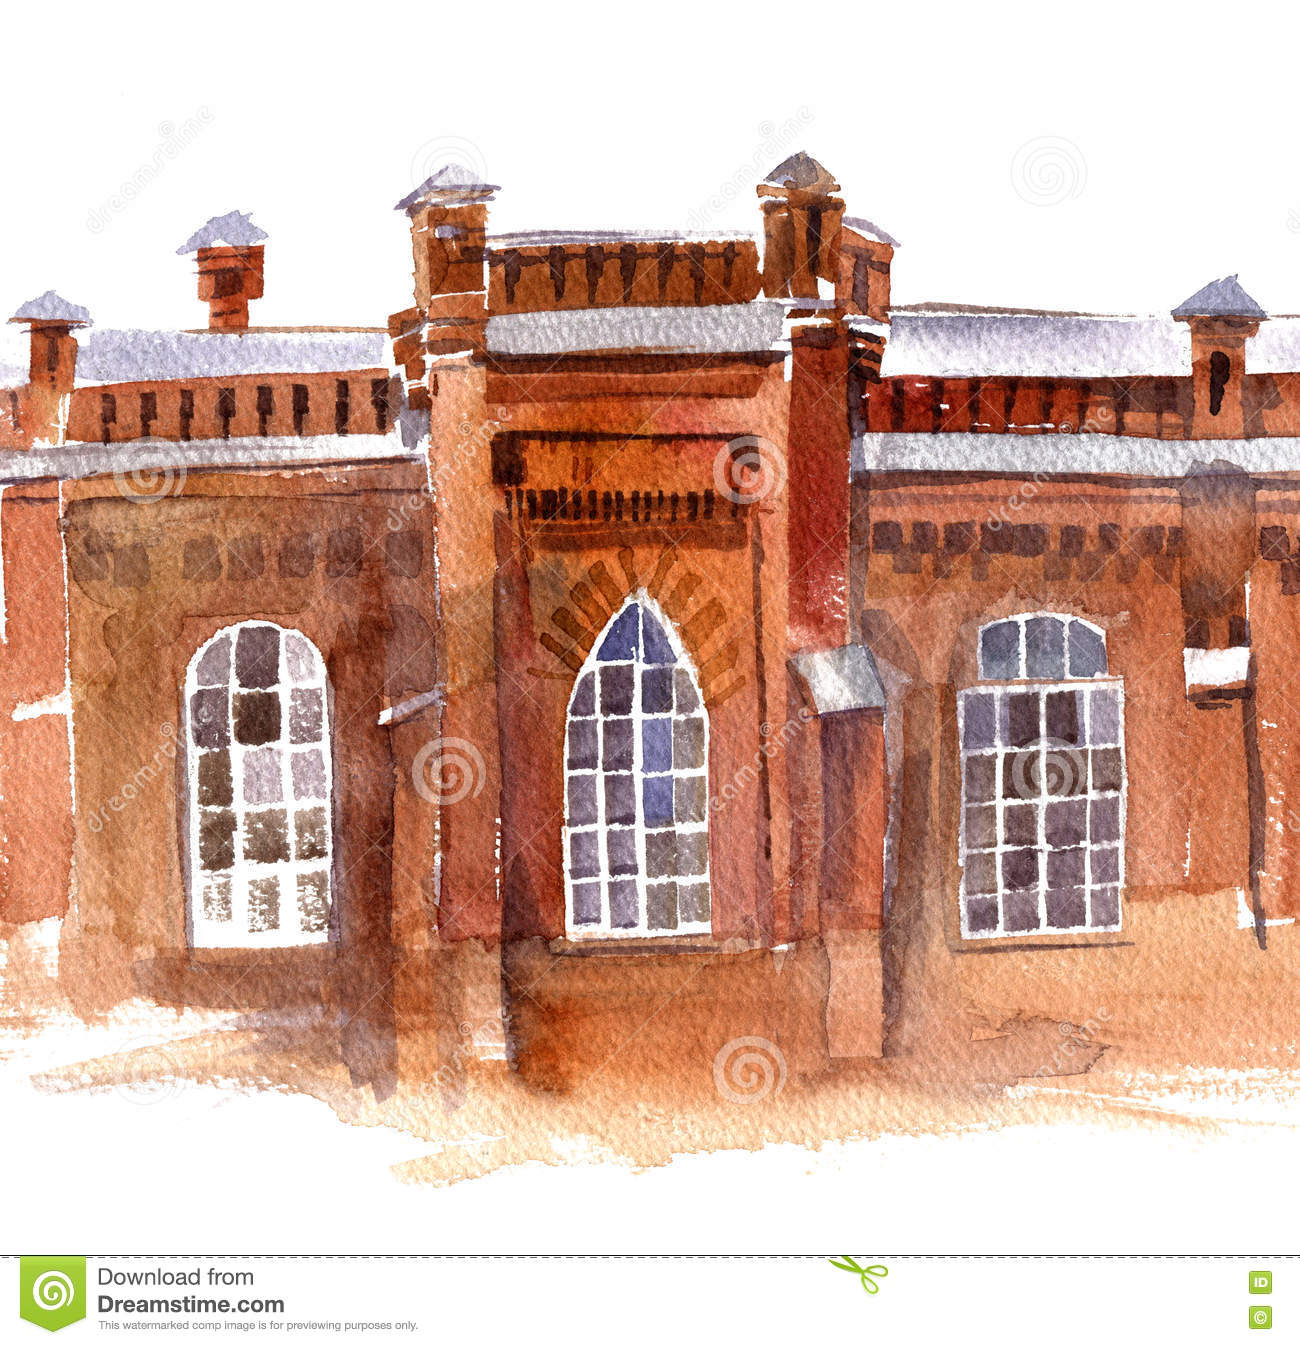 Brick Apartment Building Illustration. Watercolor old red brick city buildings  Home architecture Royalty Free Illustration Old Red Brick City Buildings Stock